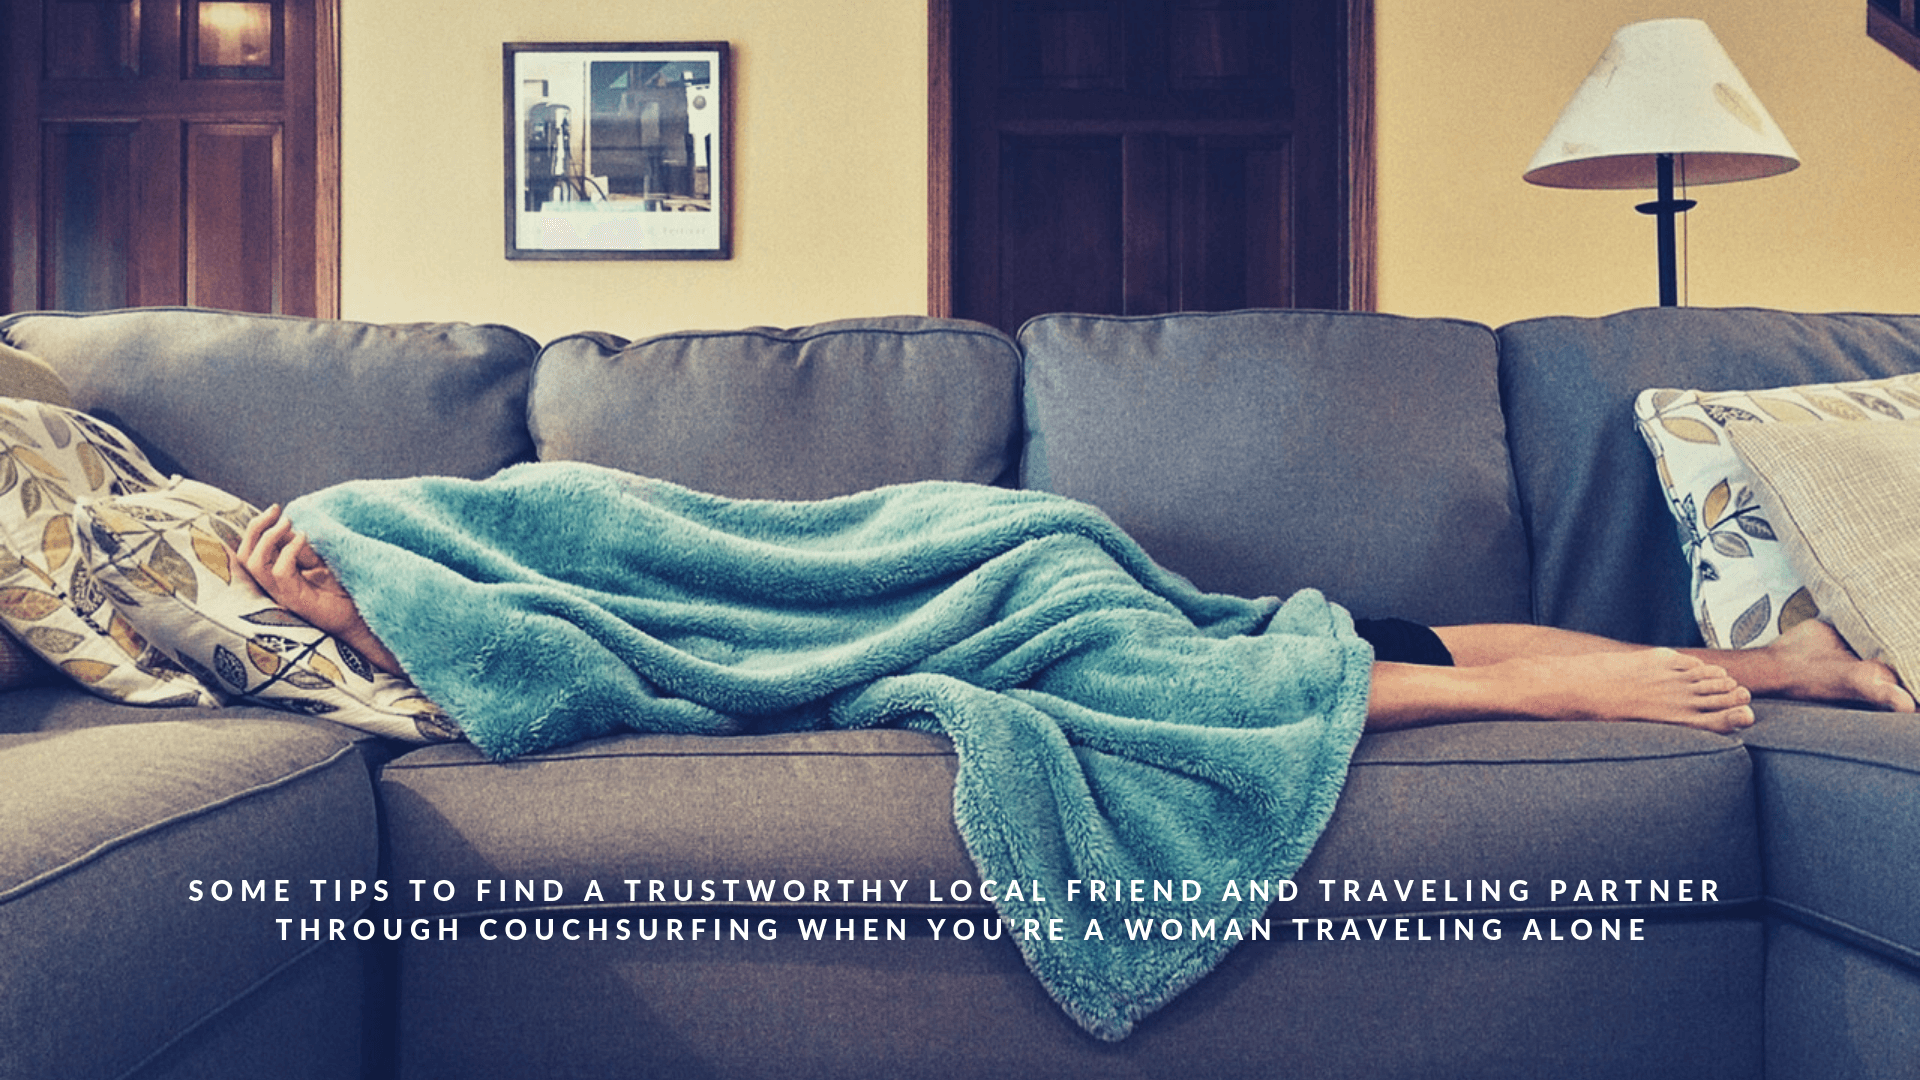 Some Tips to Find a Trustworthy Local Friend and Traveling Partner Through Couchsurfing When You're a Woman Traveling Alone